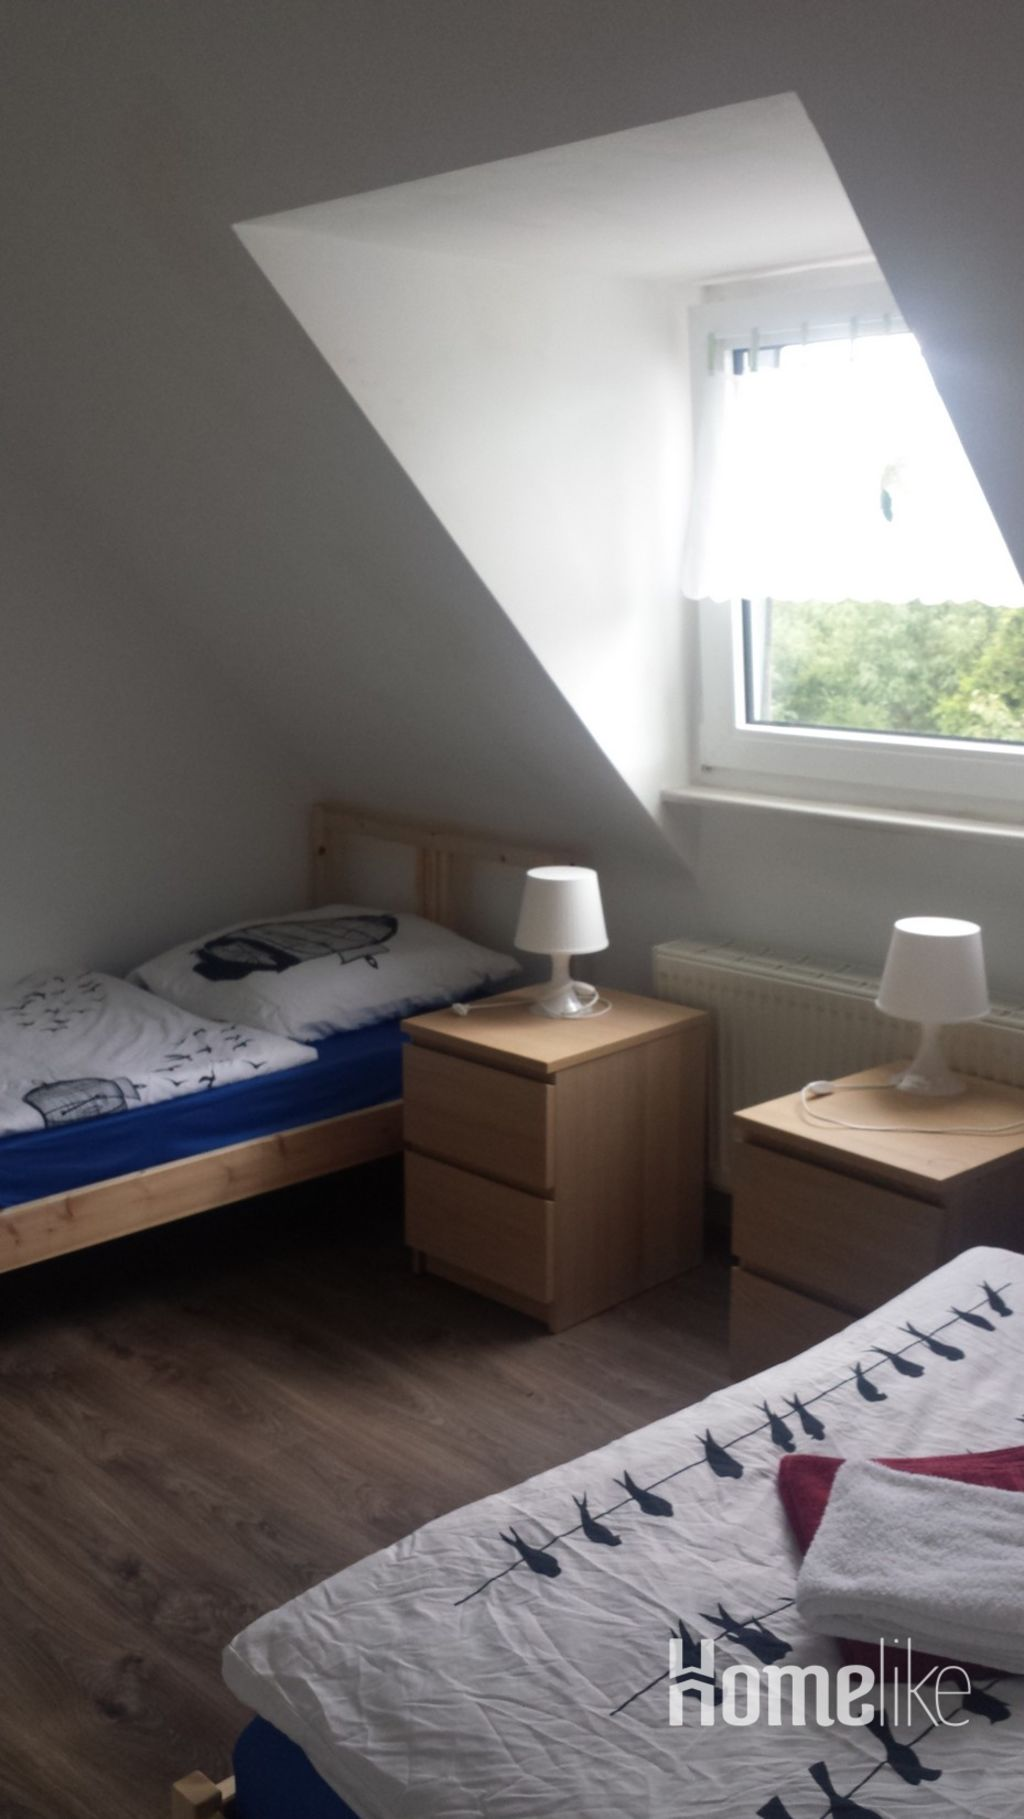 image 7 furnished 1 bedroom Apartment for rent in Cologne, Cologne